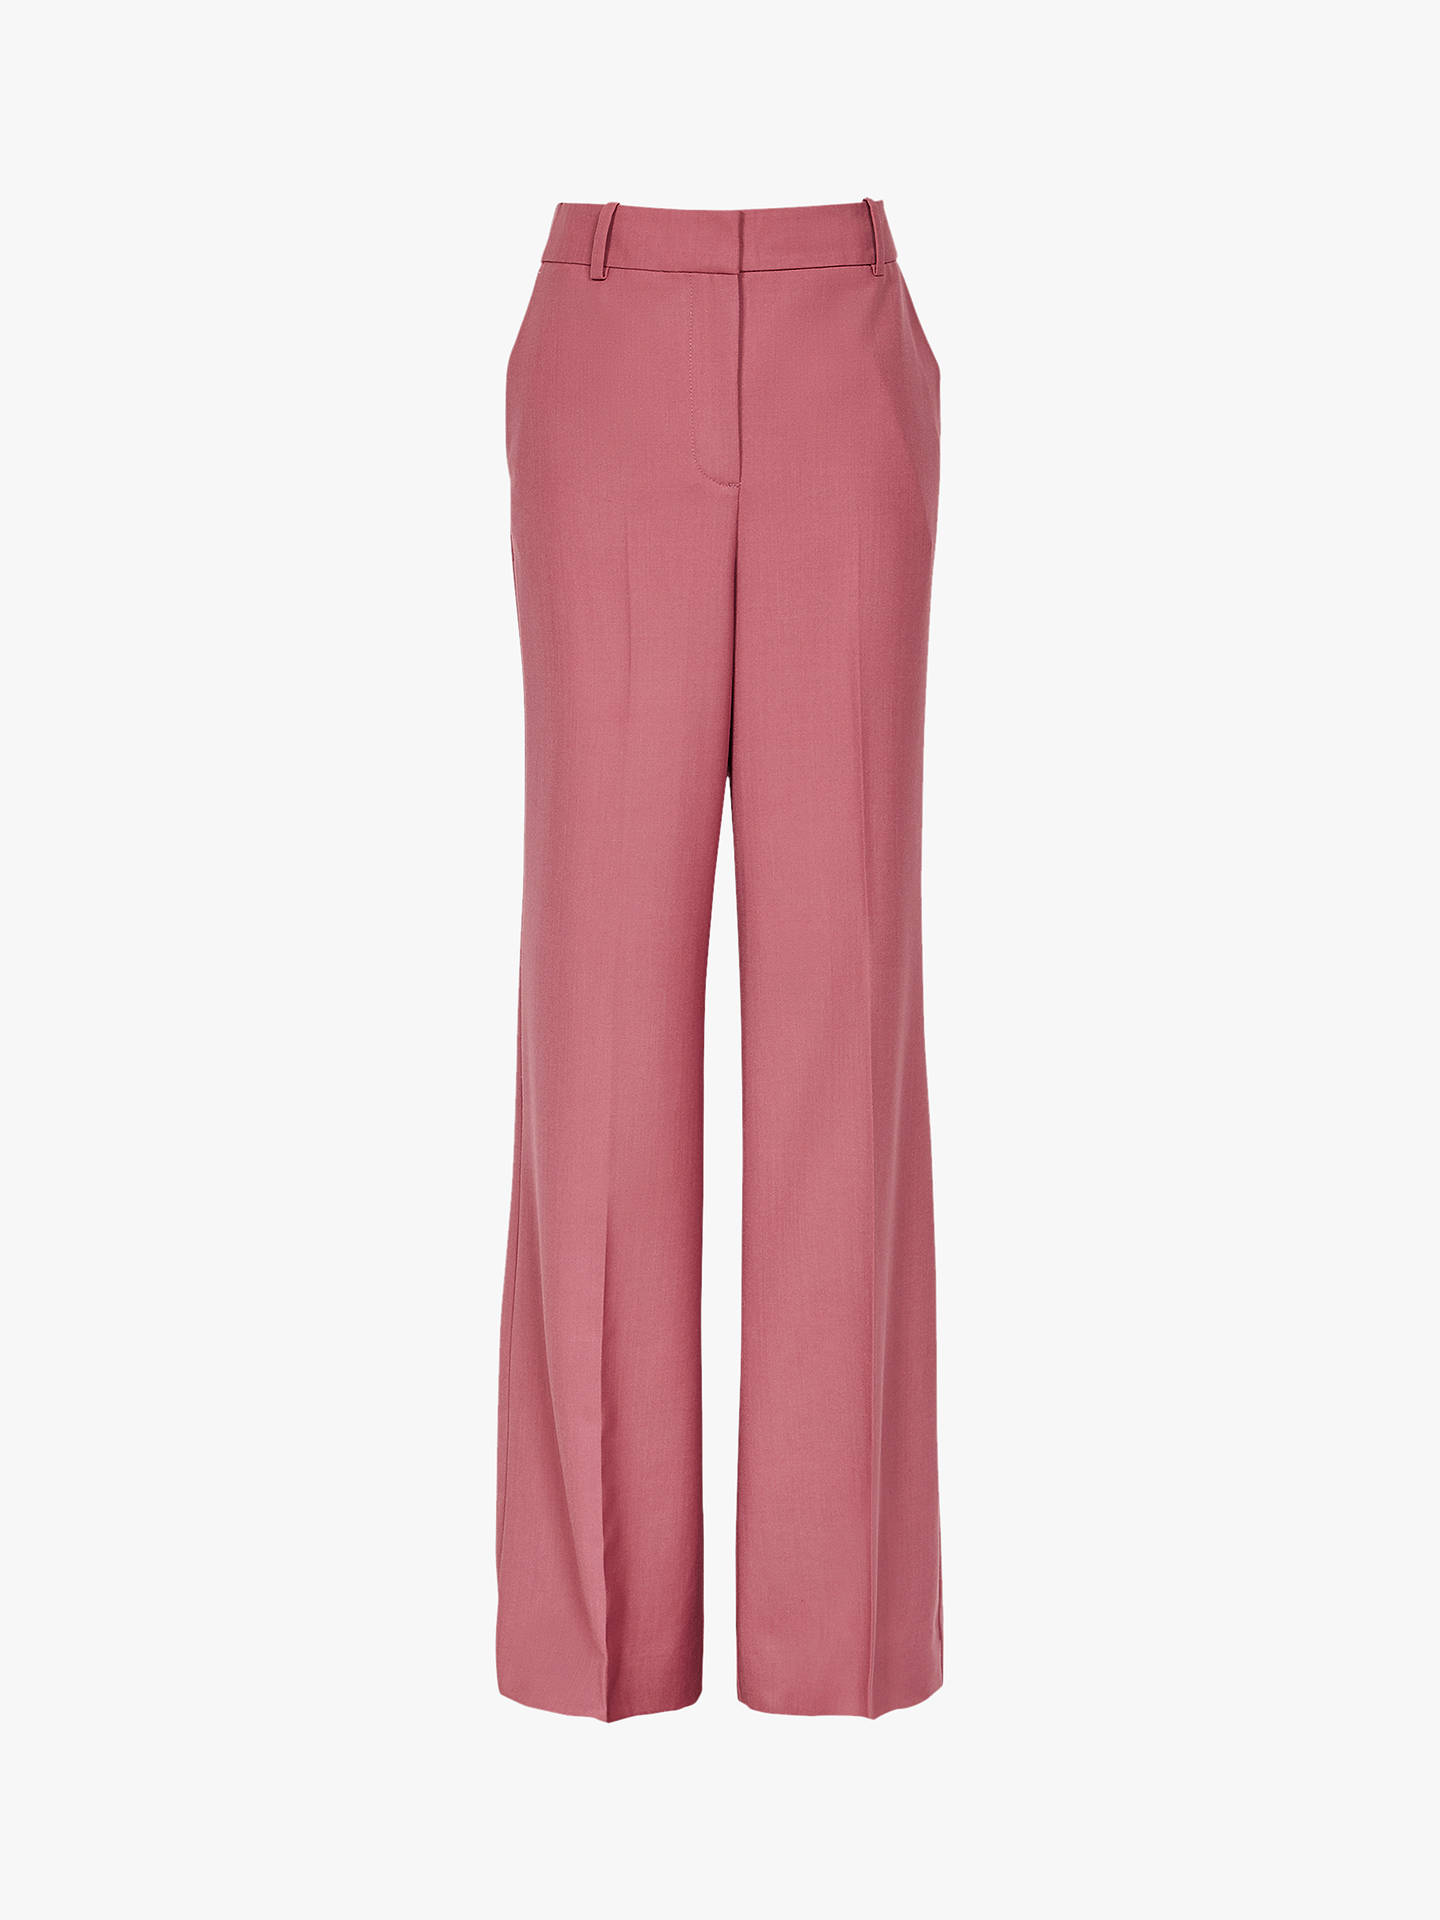 Buy Reiss Anakin Wide Leg Trousers, Tulip Pink, 6 Online at johnlewis.com